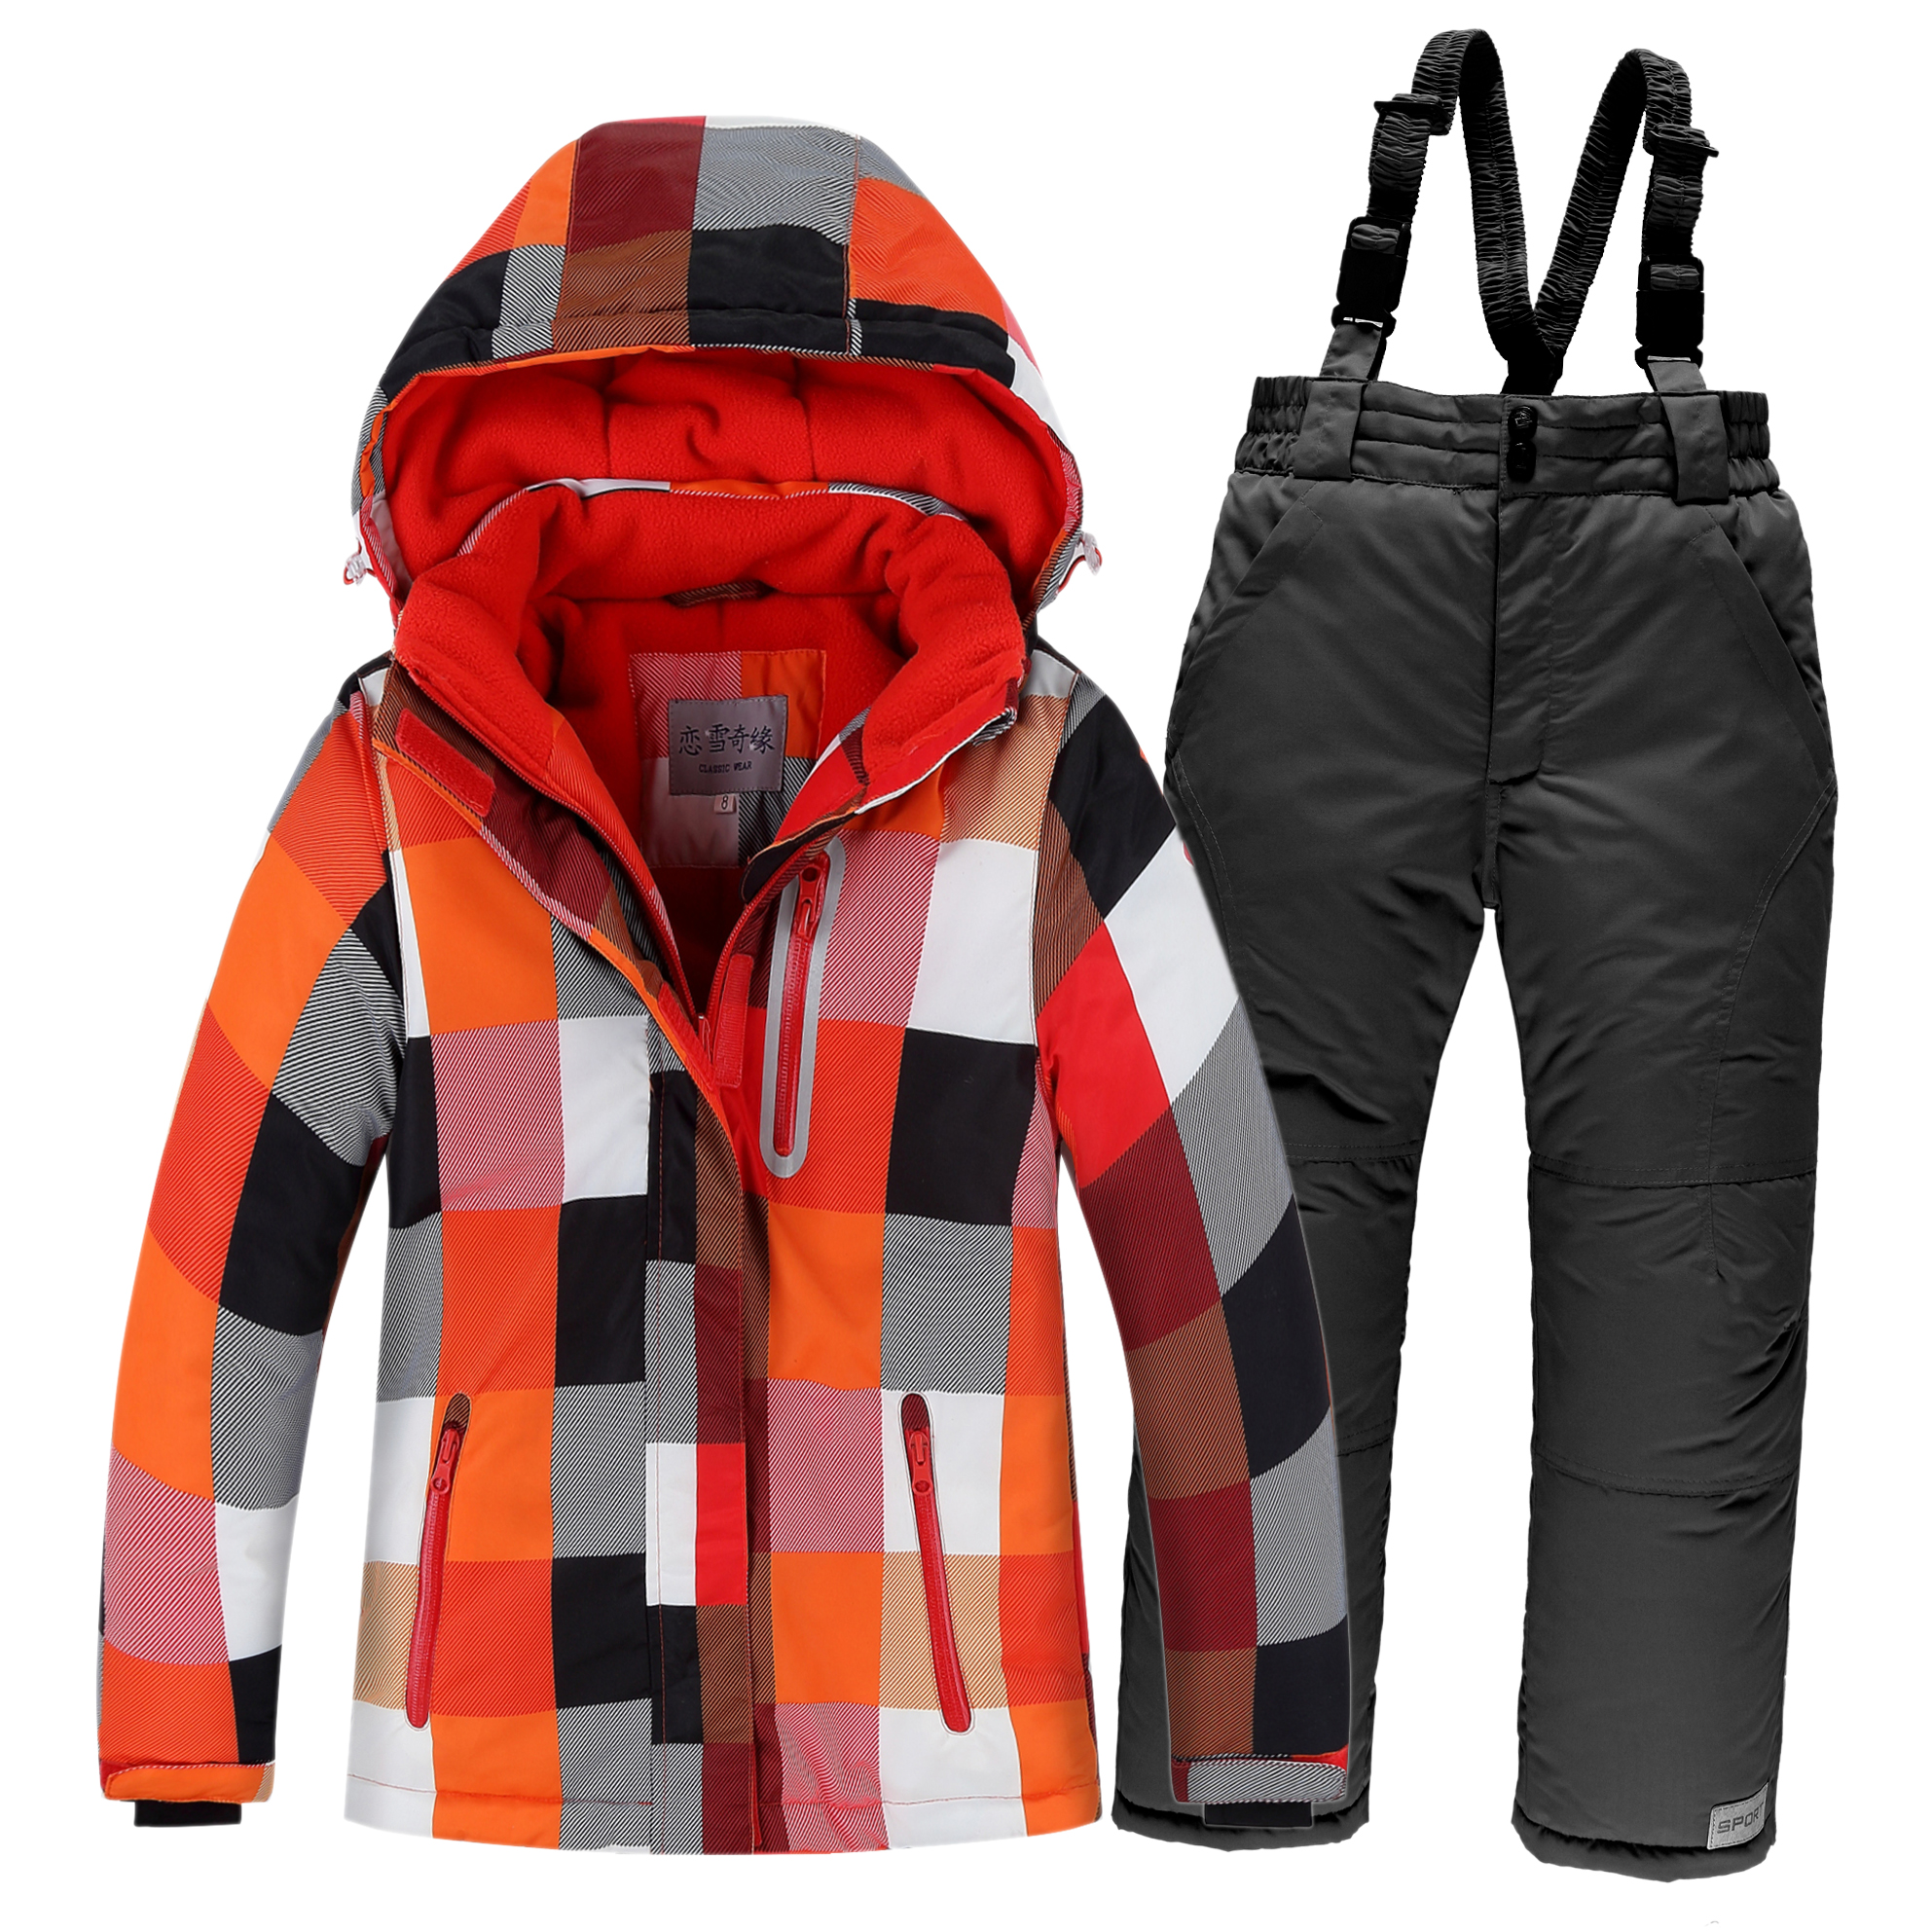 Winter Children Ski Suit Windproof Warm Girls Clothing Set Jacket + Overalls Boys Clothes Set 3-16 Years Kids Snow Suits boys girls snow suits kids ski jacket pants windproof waterproof breathable winter warm clothing children suit set for skiing